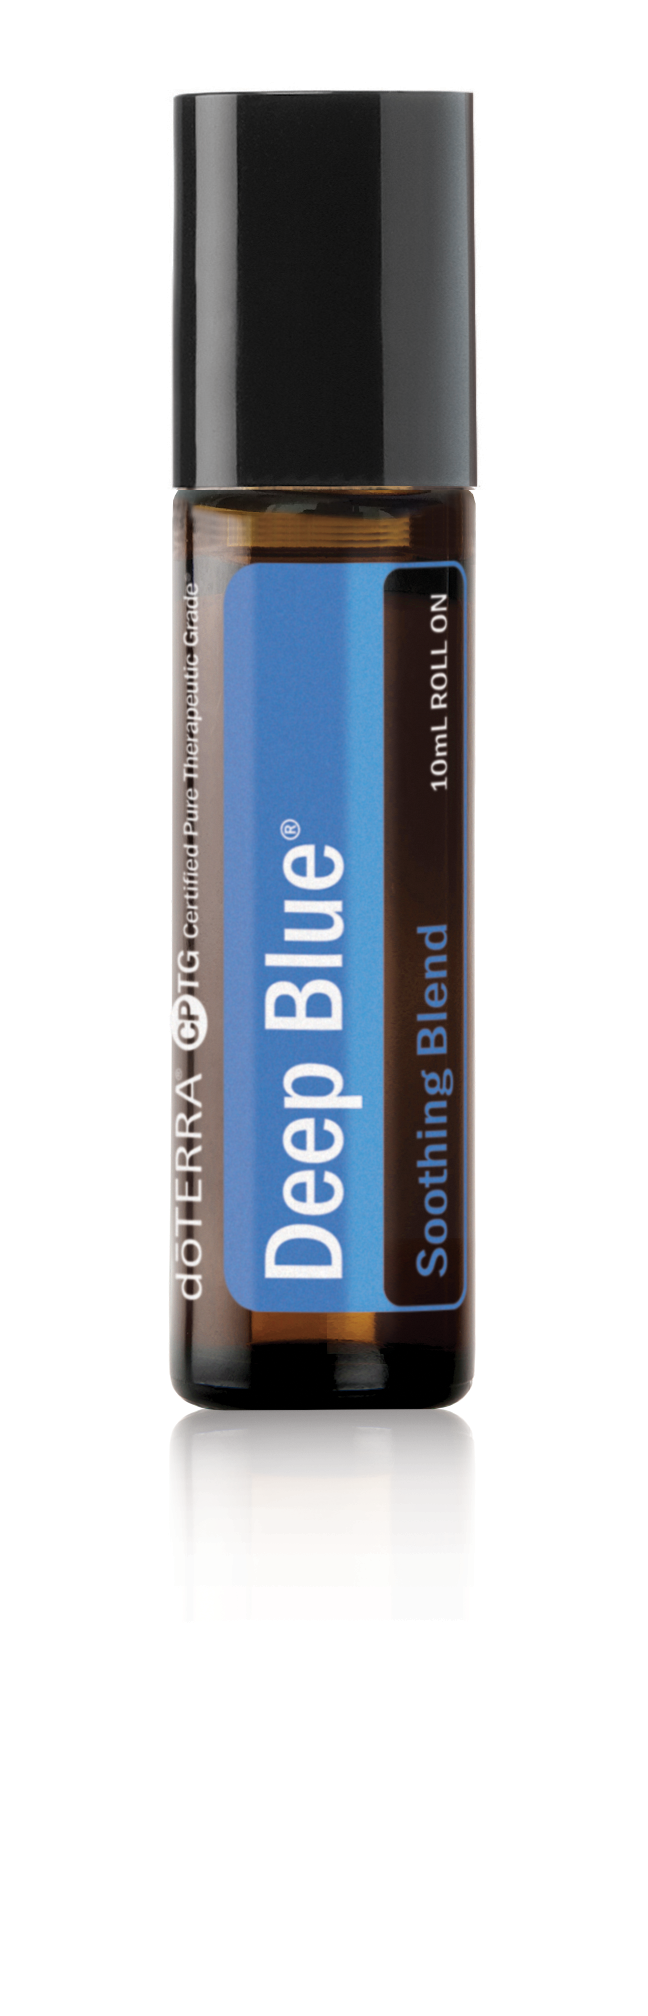 Deep Blue Soothing Blend Oil Roll-On - Purity of Earth